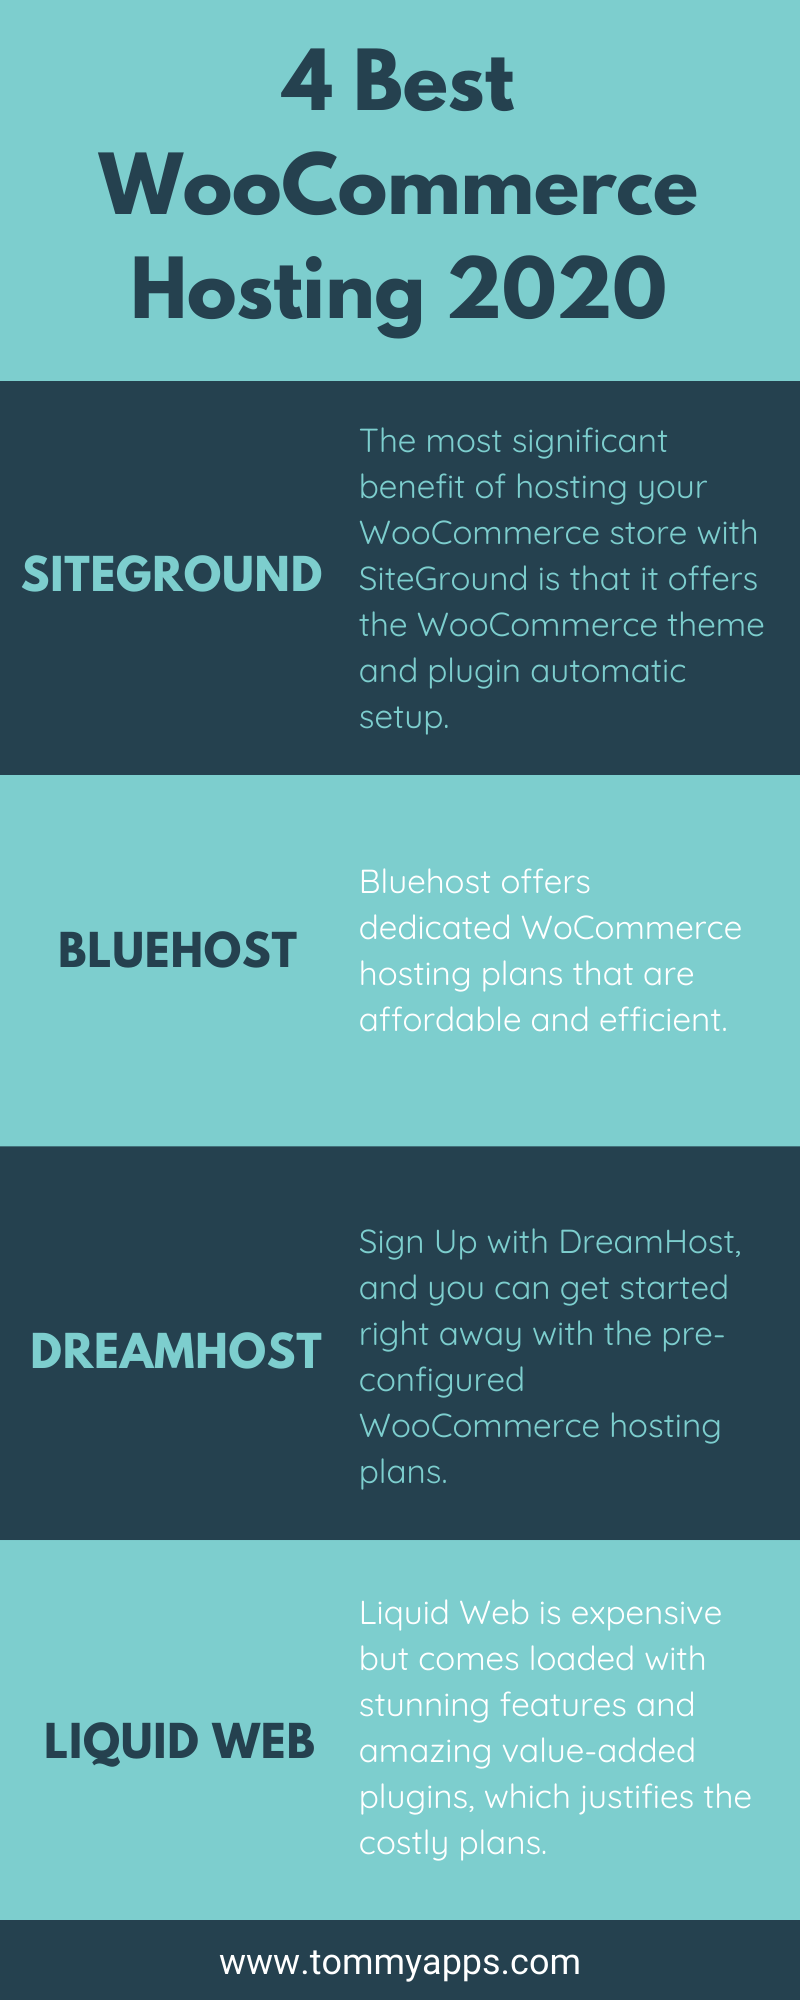 4 Best WooCommerce Hosting 2020